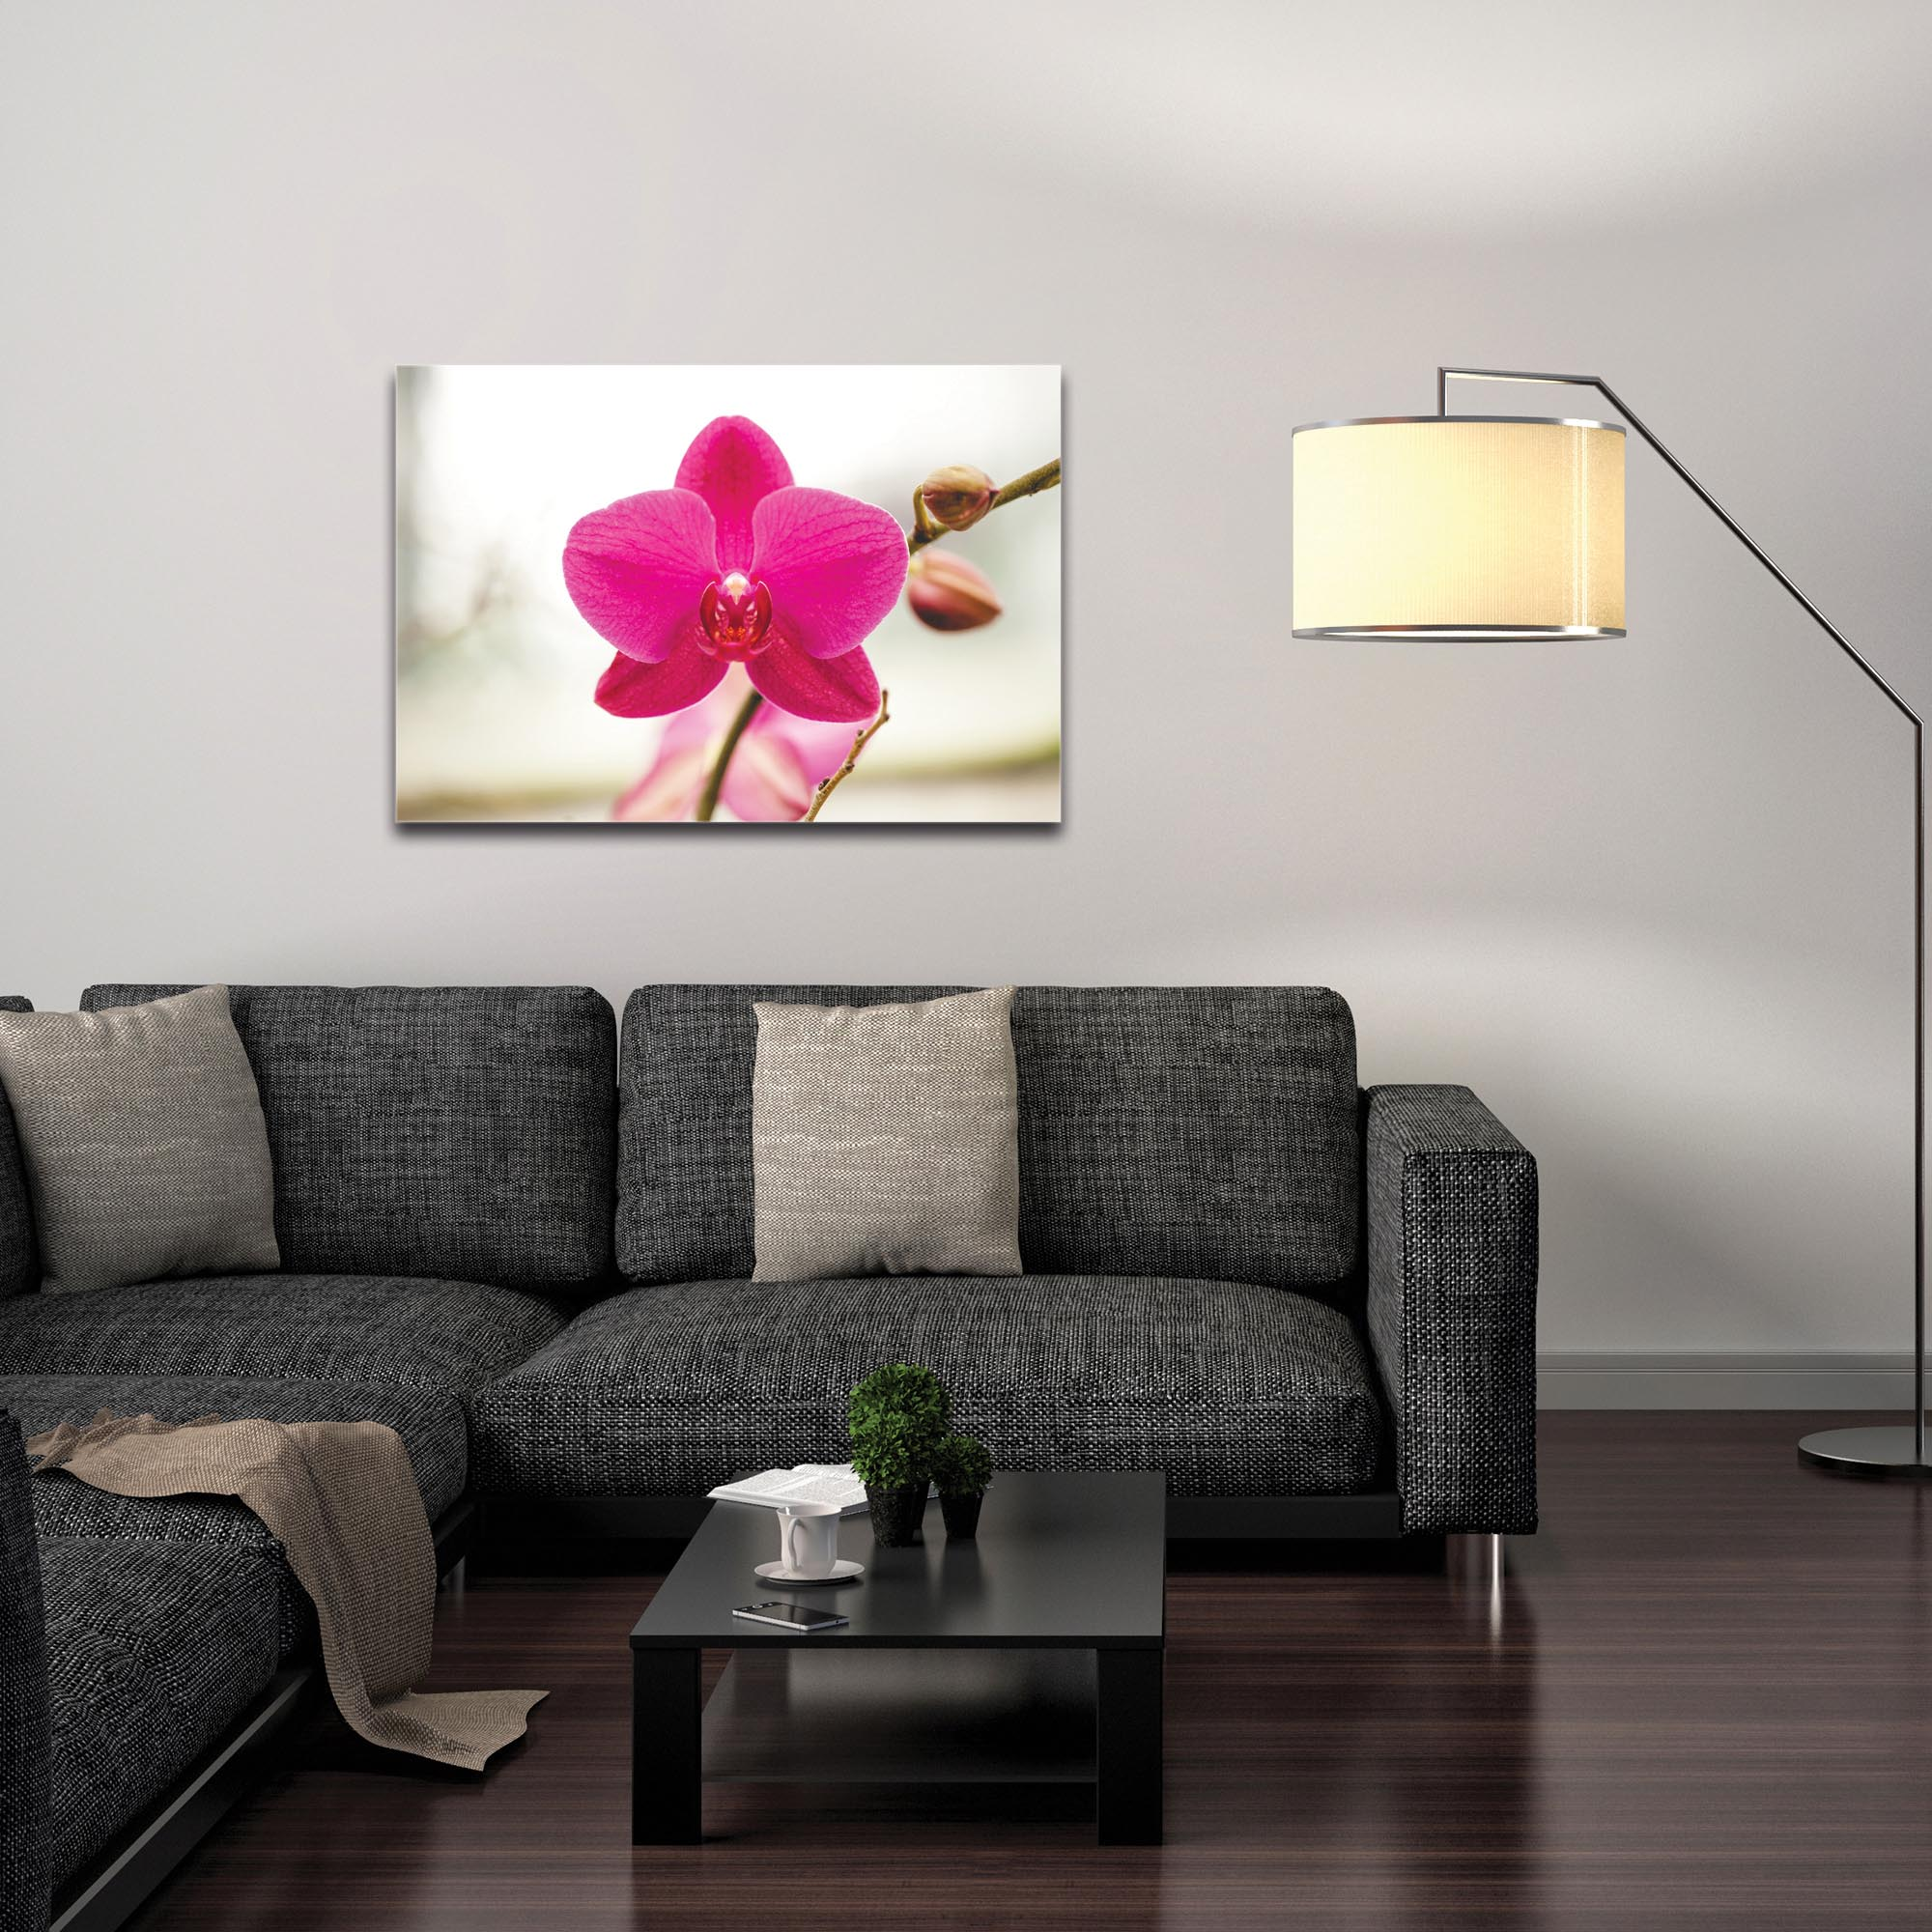 Nature Photography 'Magenta Bloom' - Flower Blossom Art on Metal or Plexiglass - Image 3